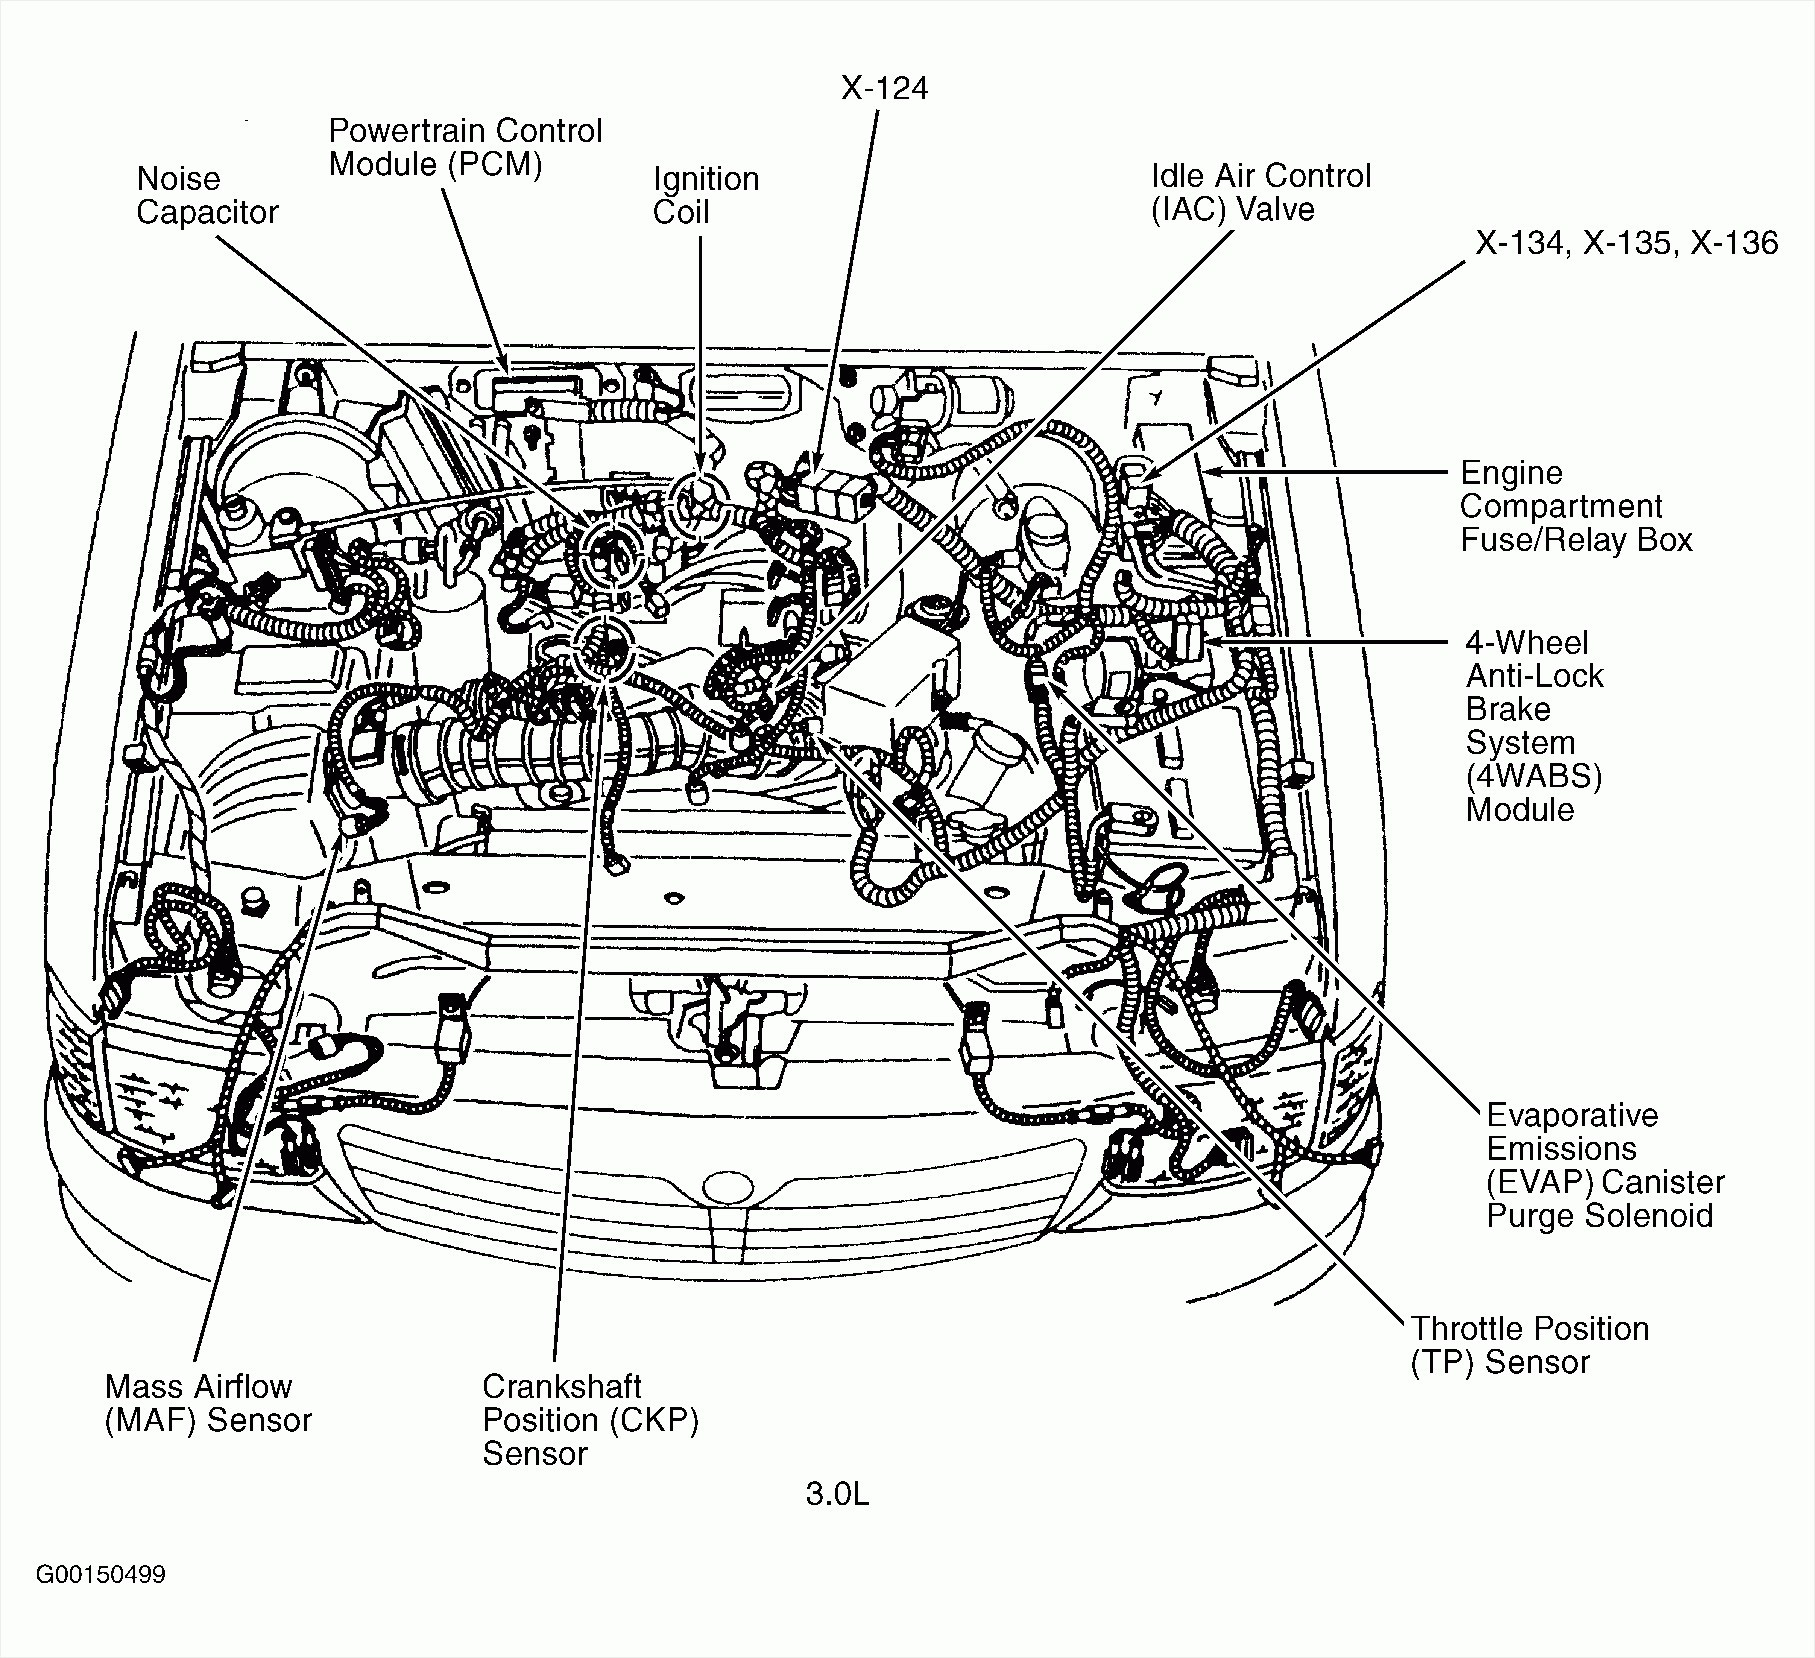 hight resolution of jeep wrangler 3 8 engine diagram wiring diagram img 1999 chevy lumina 3 8 engine diagram